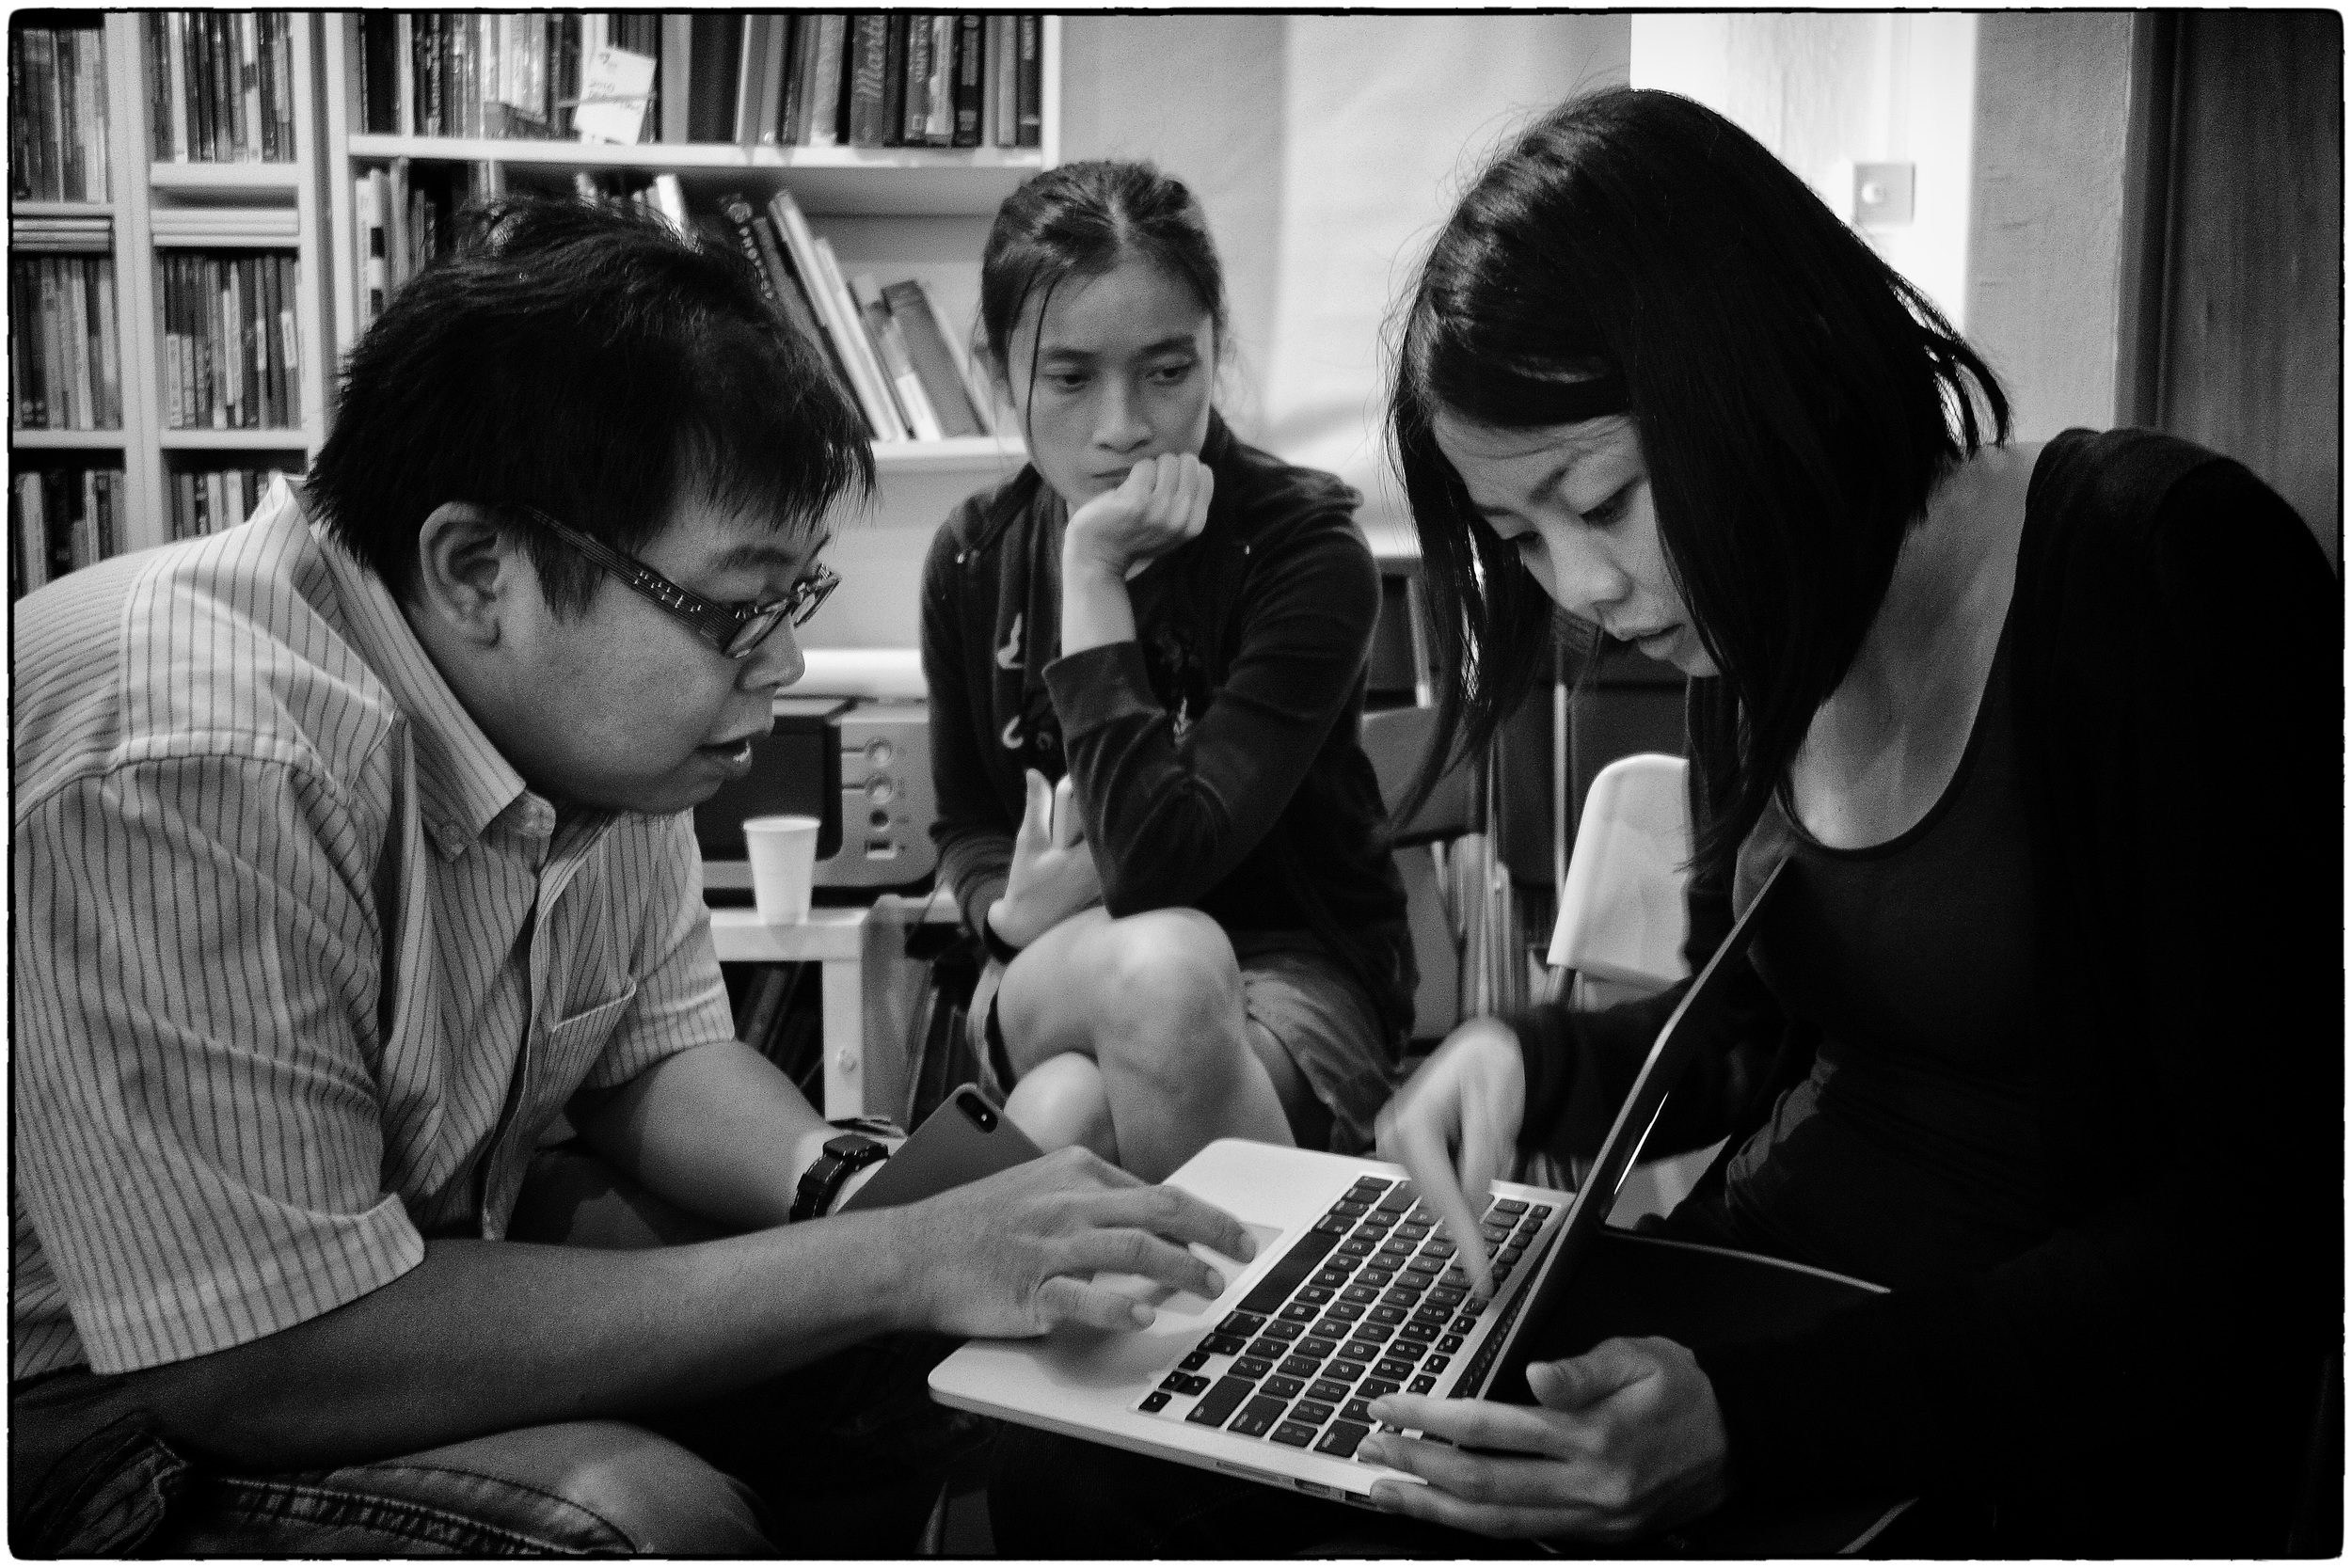 Cheryl (on the right) gets an edit from Darren and Wei Leng.